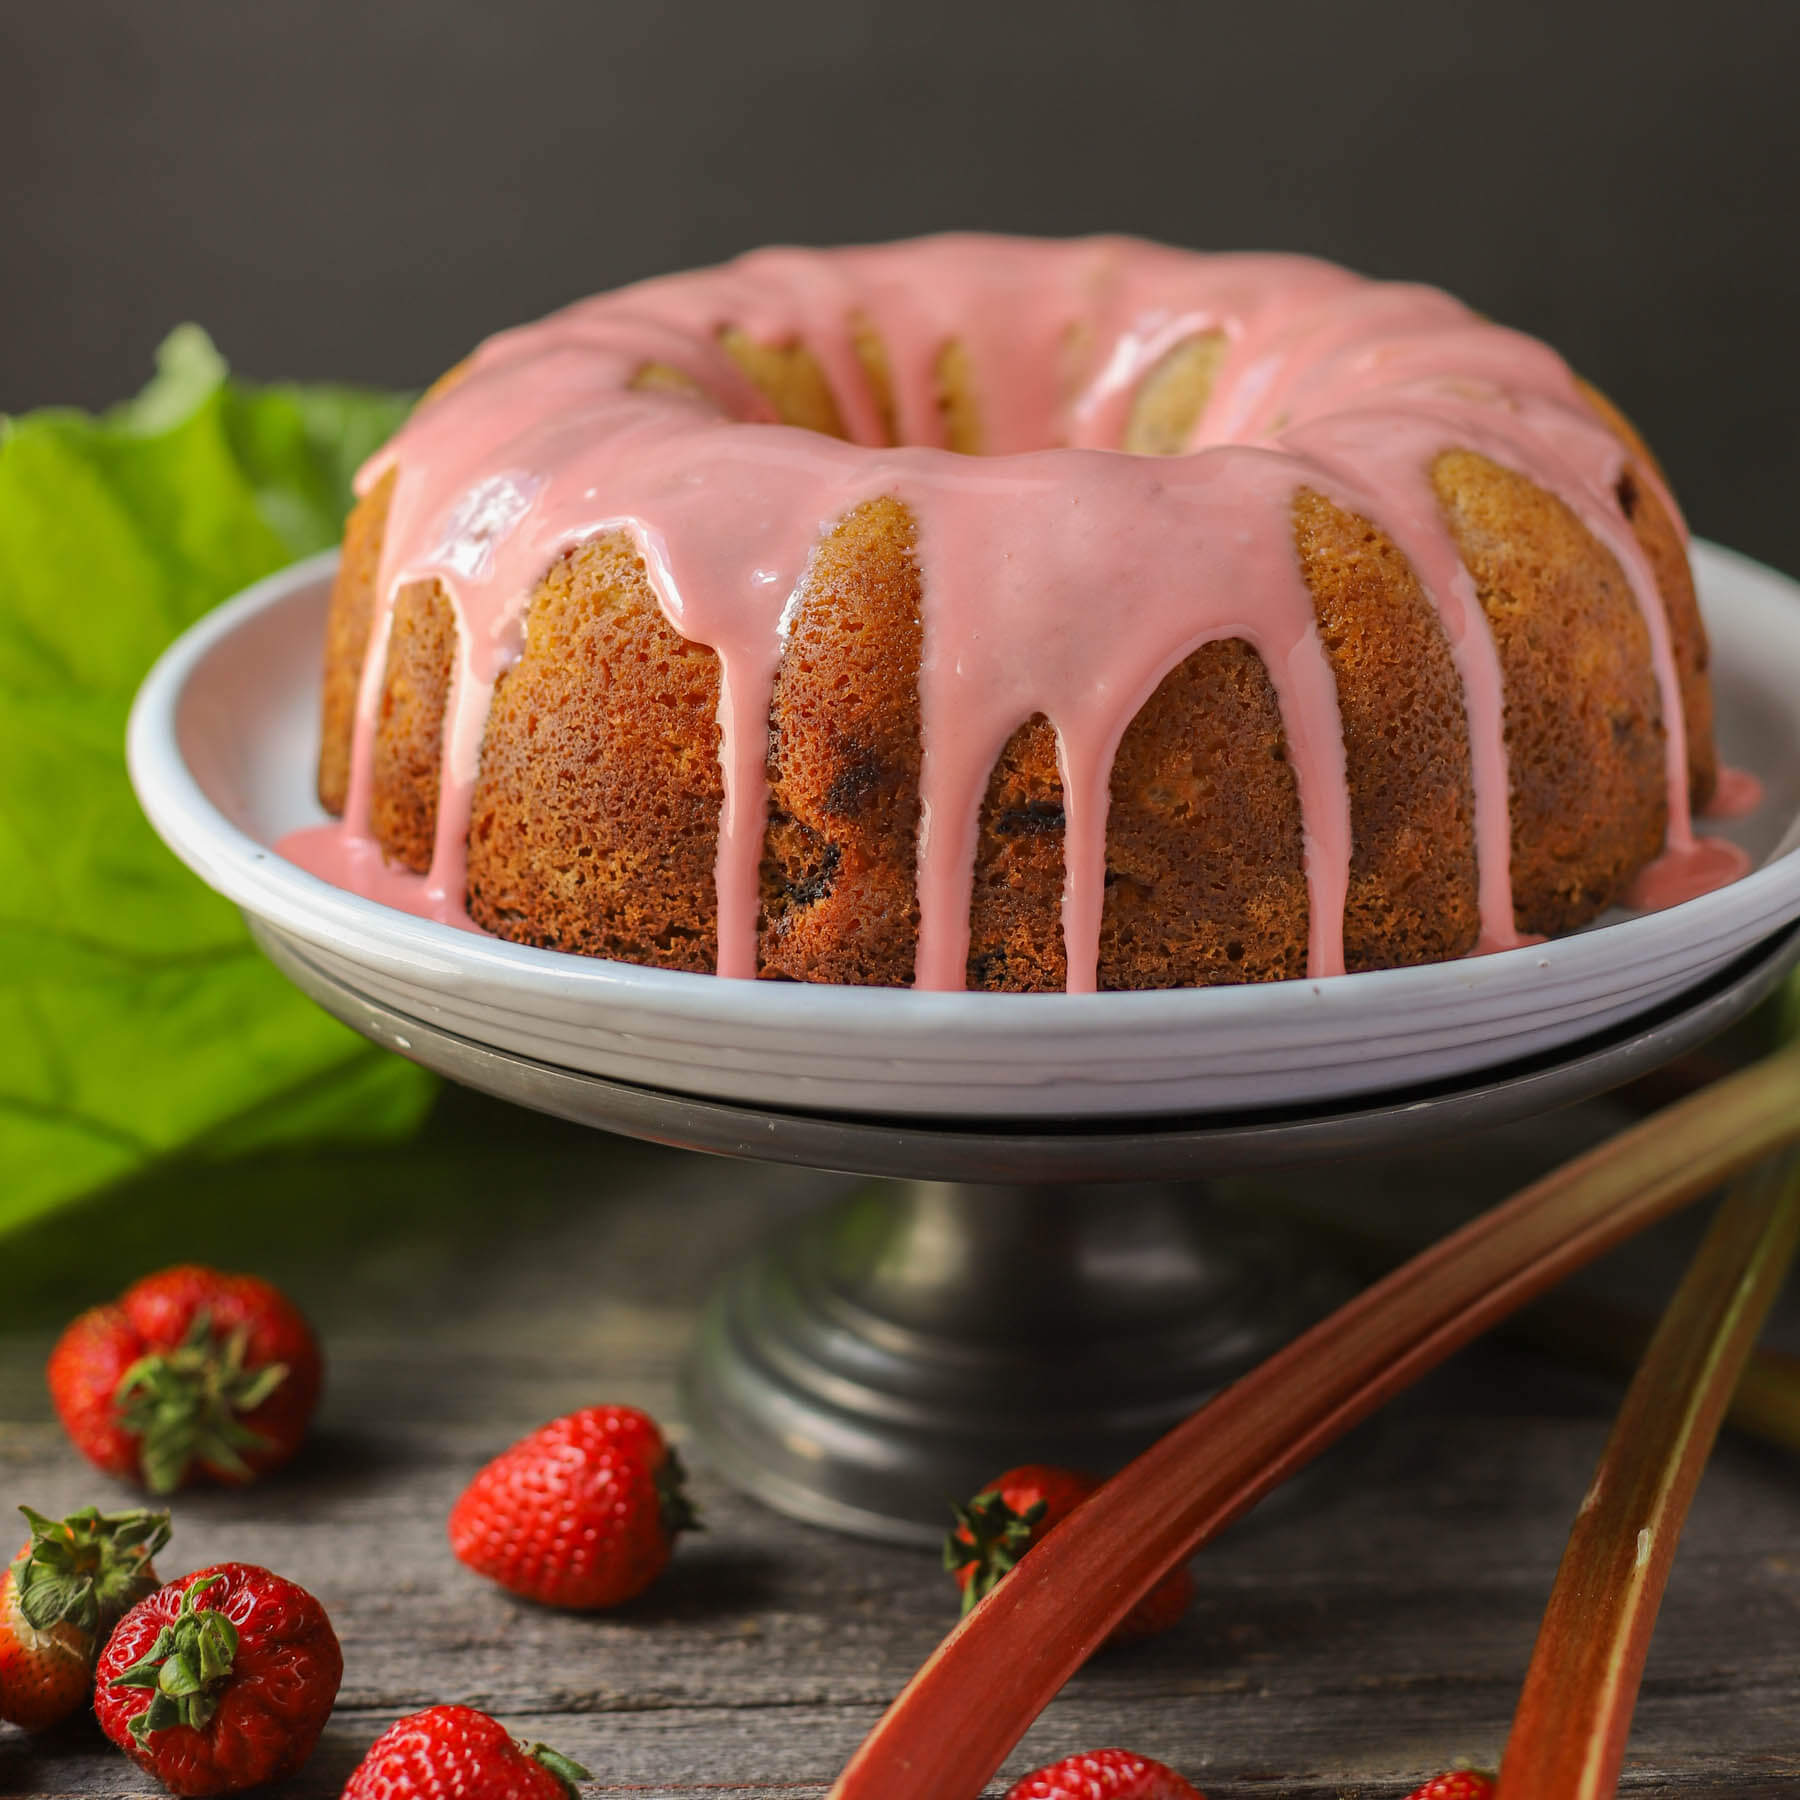 A golden baked bundt cake topped with pink glaze.